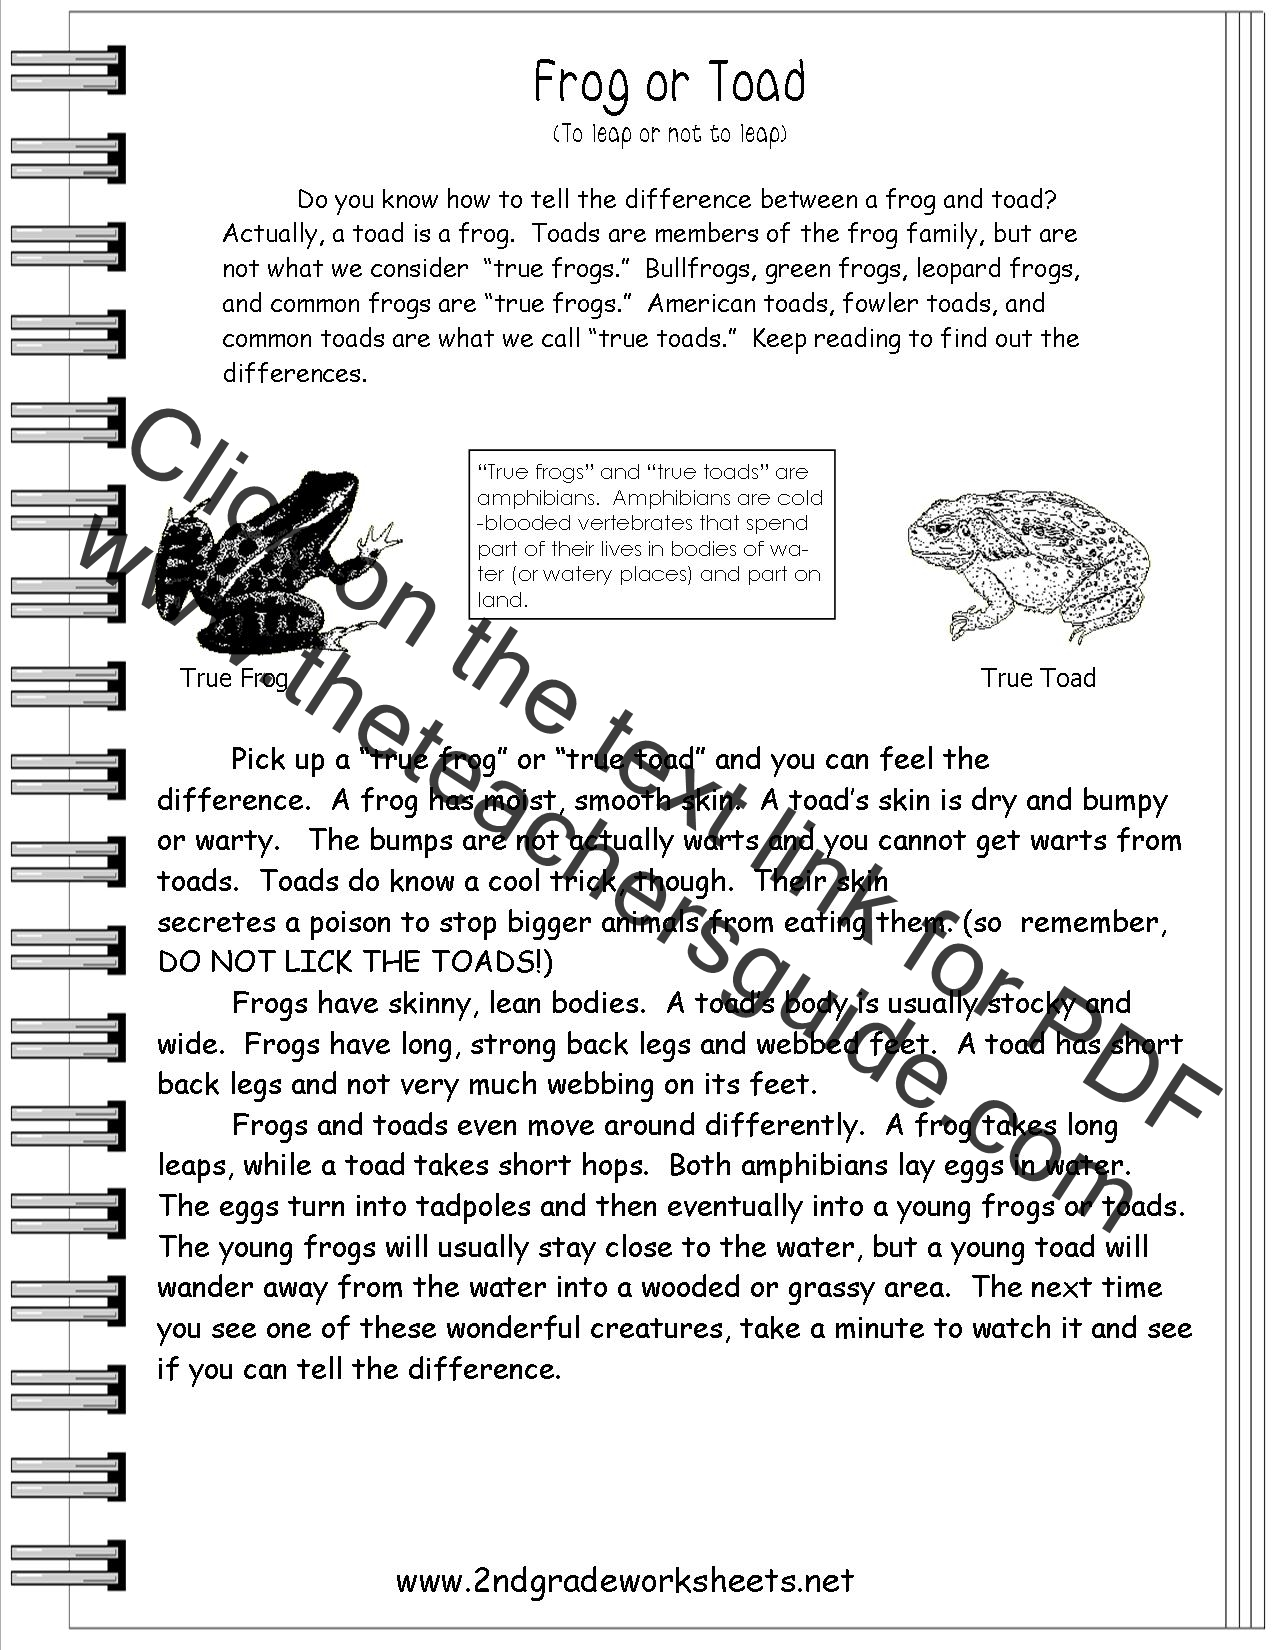 worksheet Nonfiction Reading Comprehension Worksheets reading informational text worksheets frog or toad worksheet